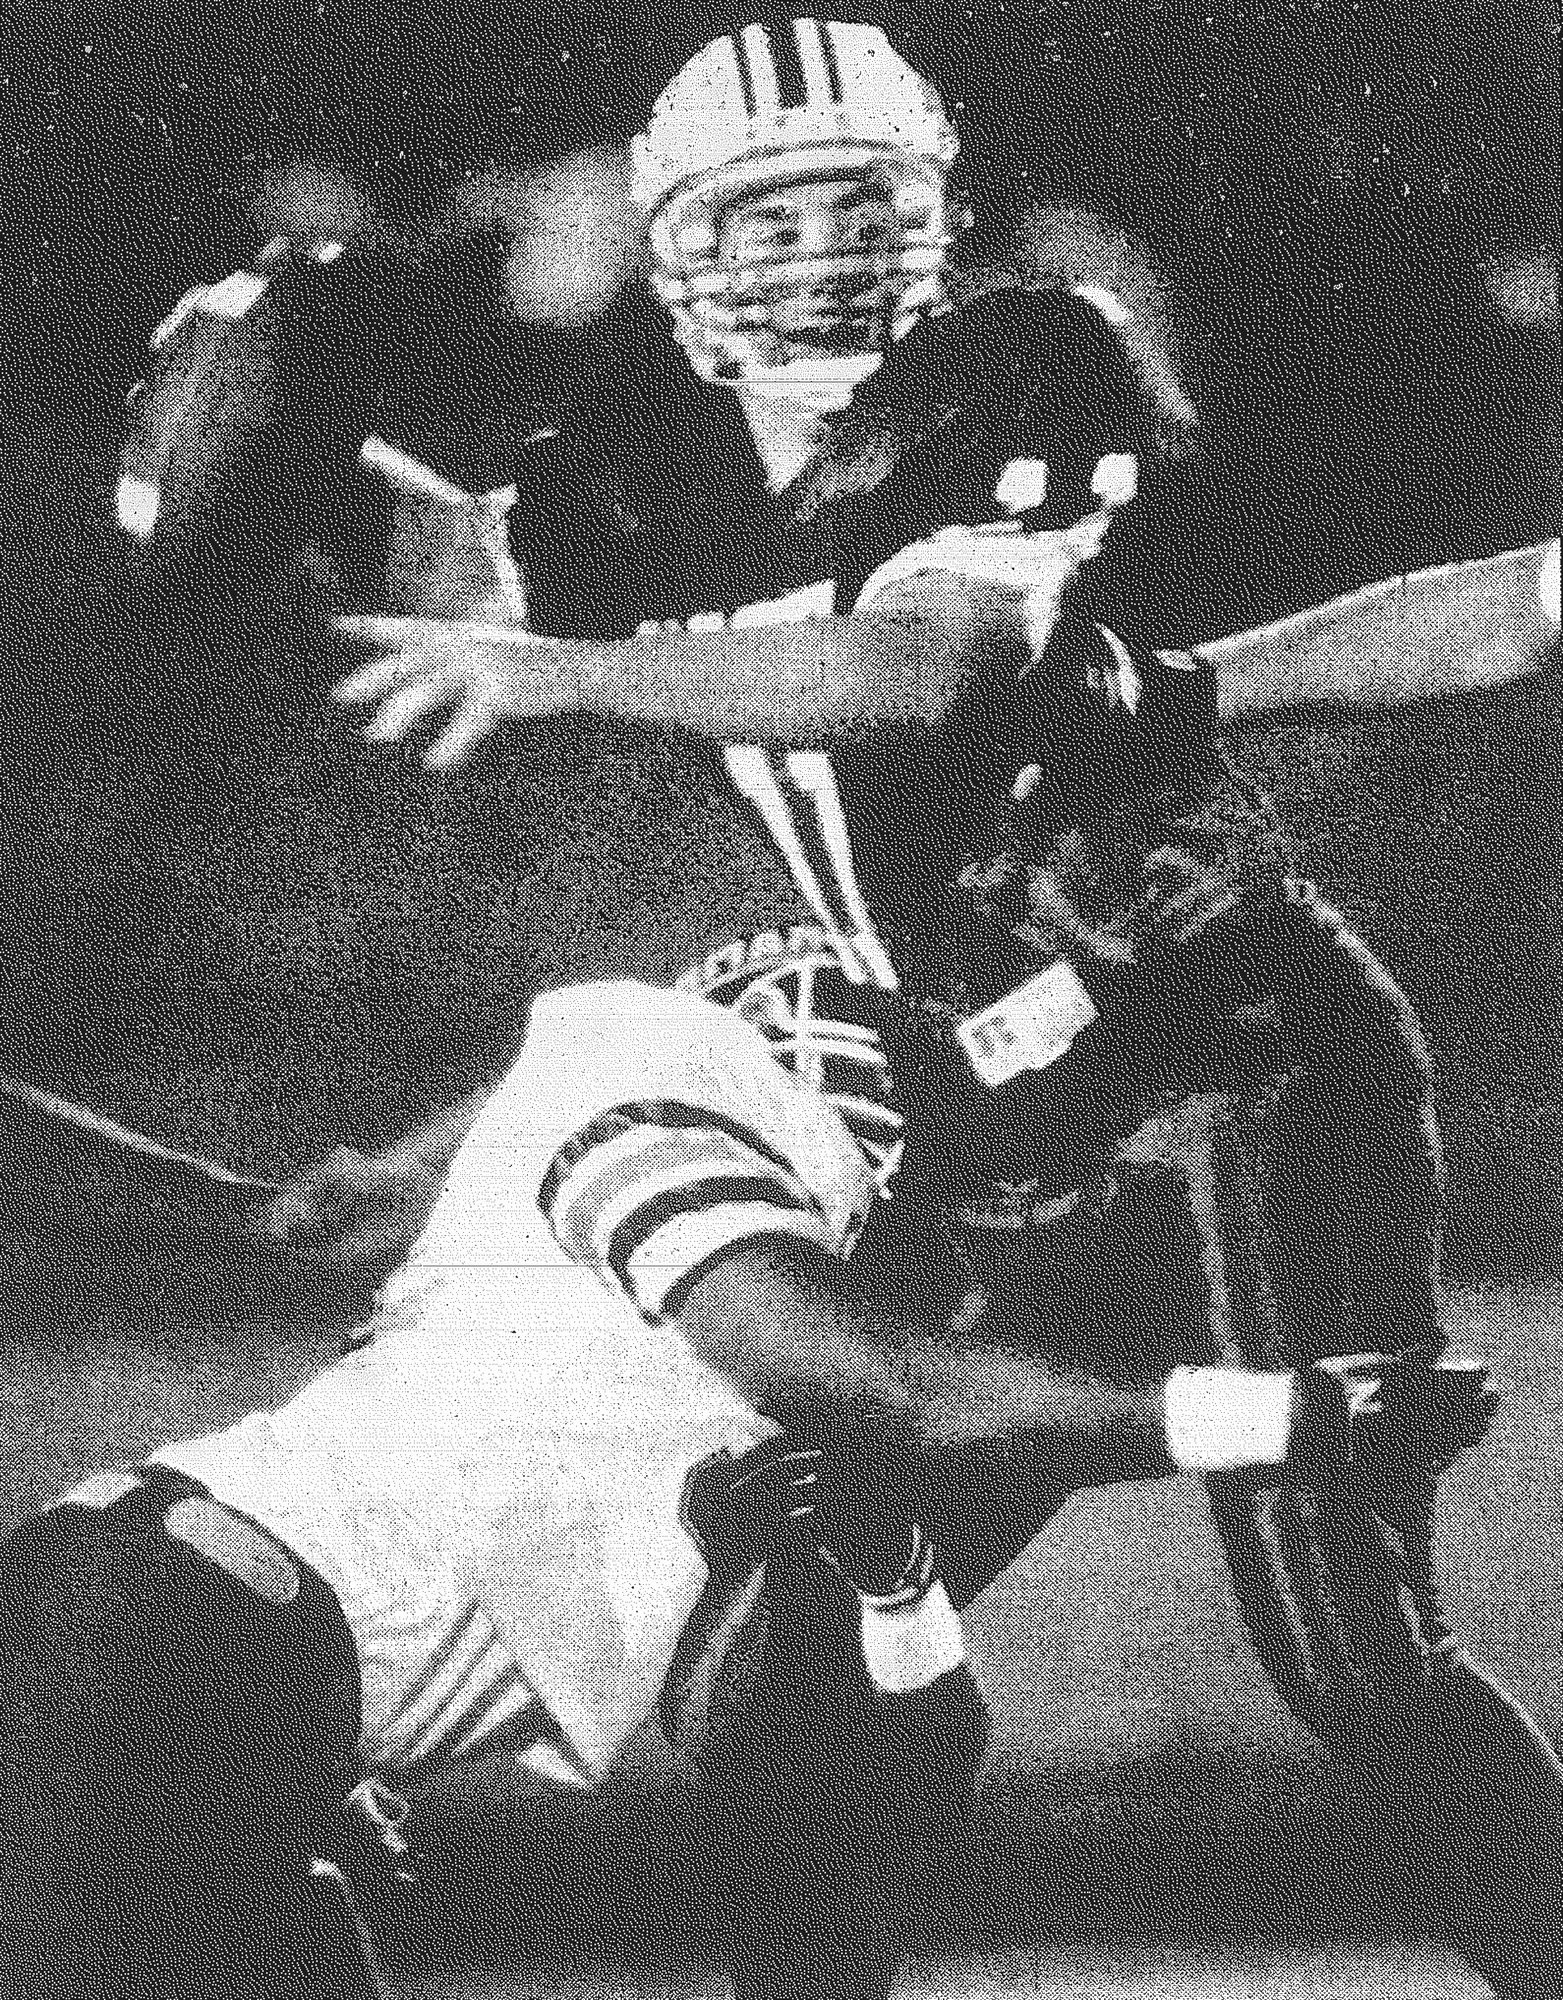 1994 - Sumter quarterback John Blanding looks downfield for a receiver as a Dorman defender wraps him up during the 4A Division I semifinal game Nov. 26.